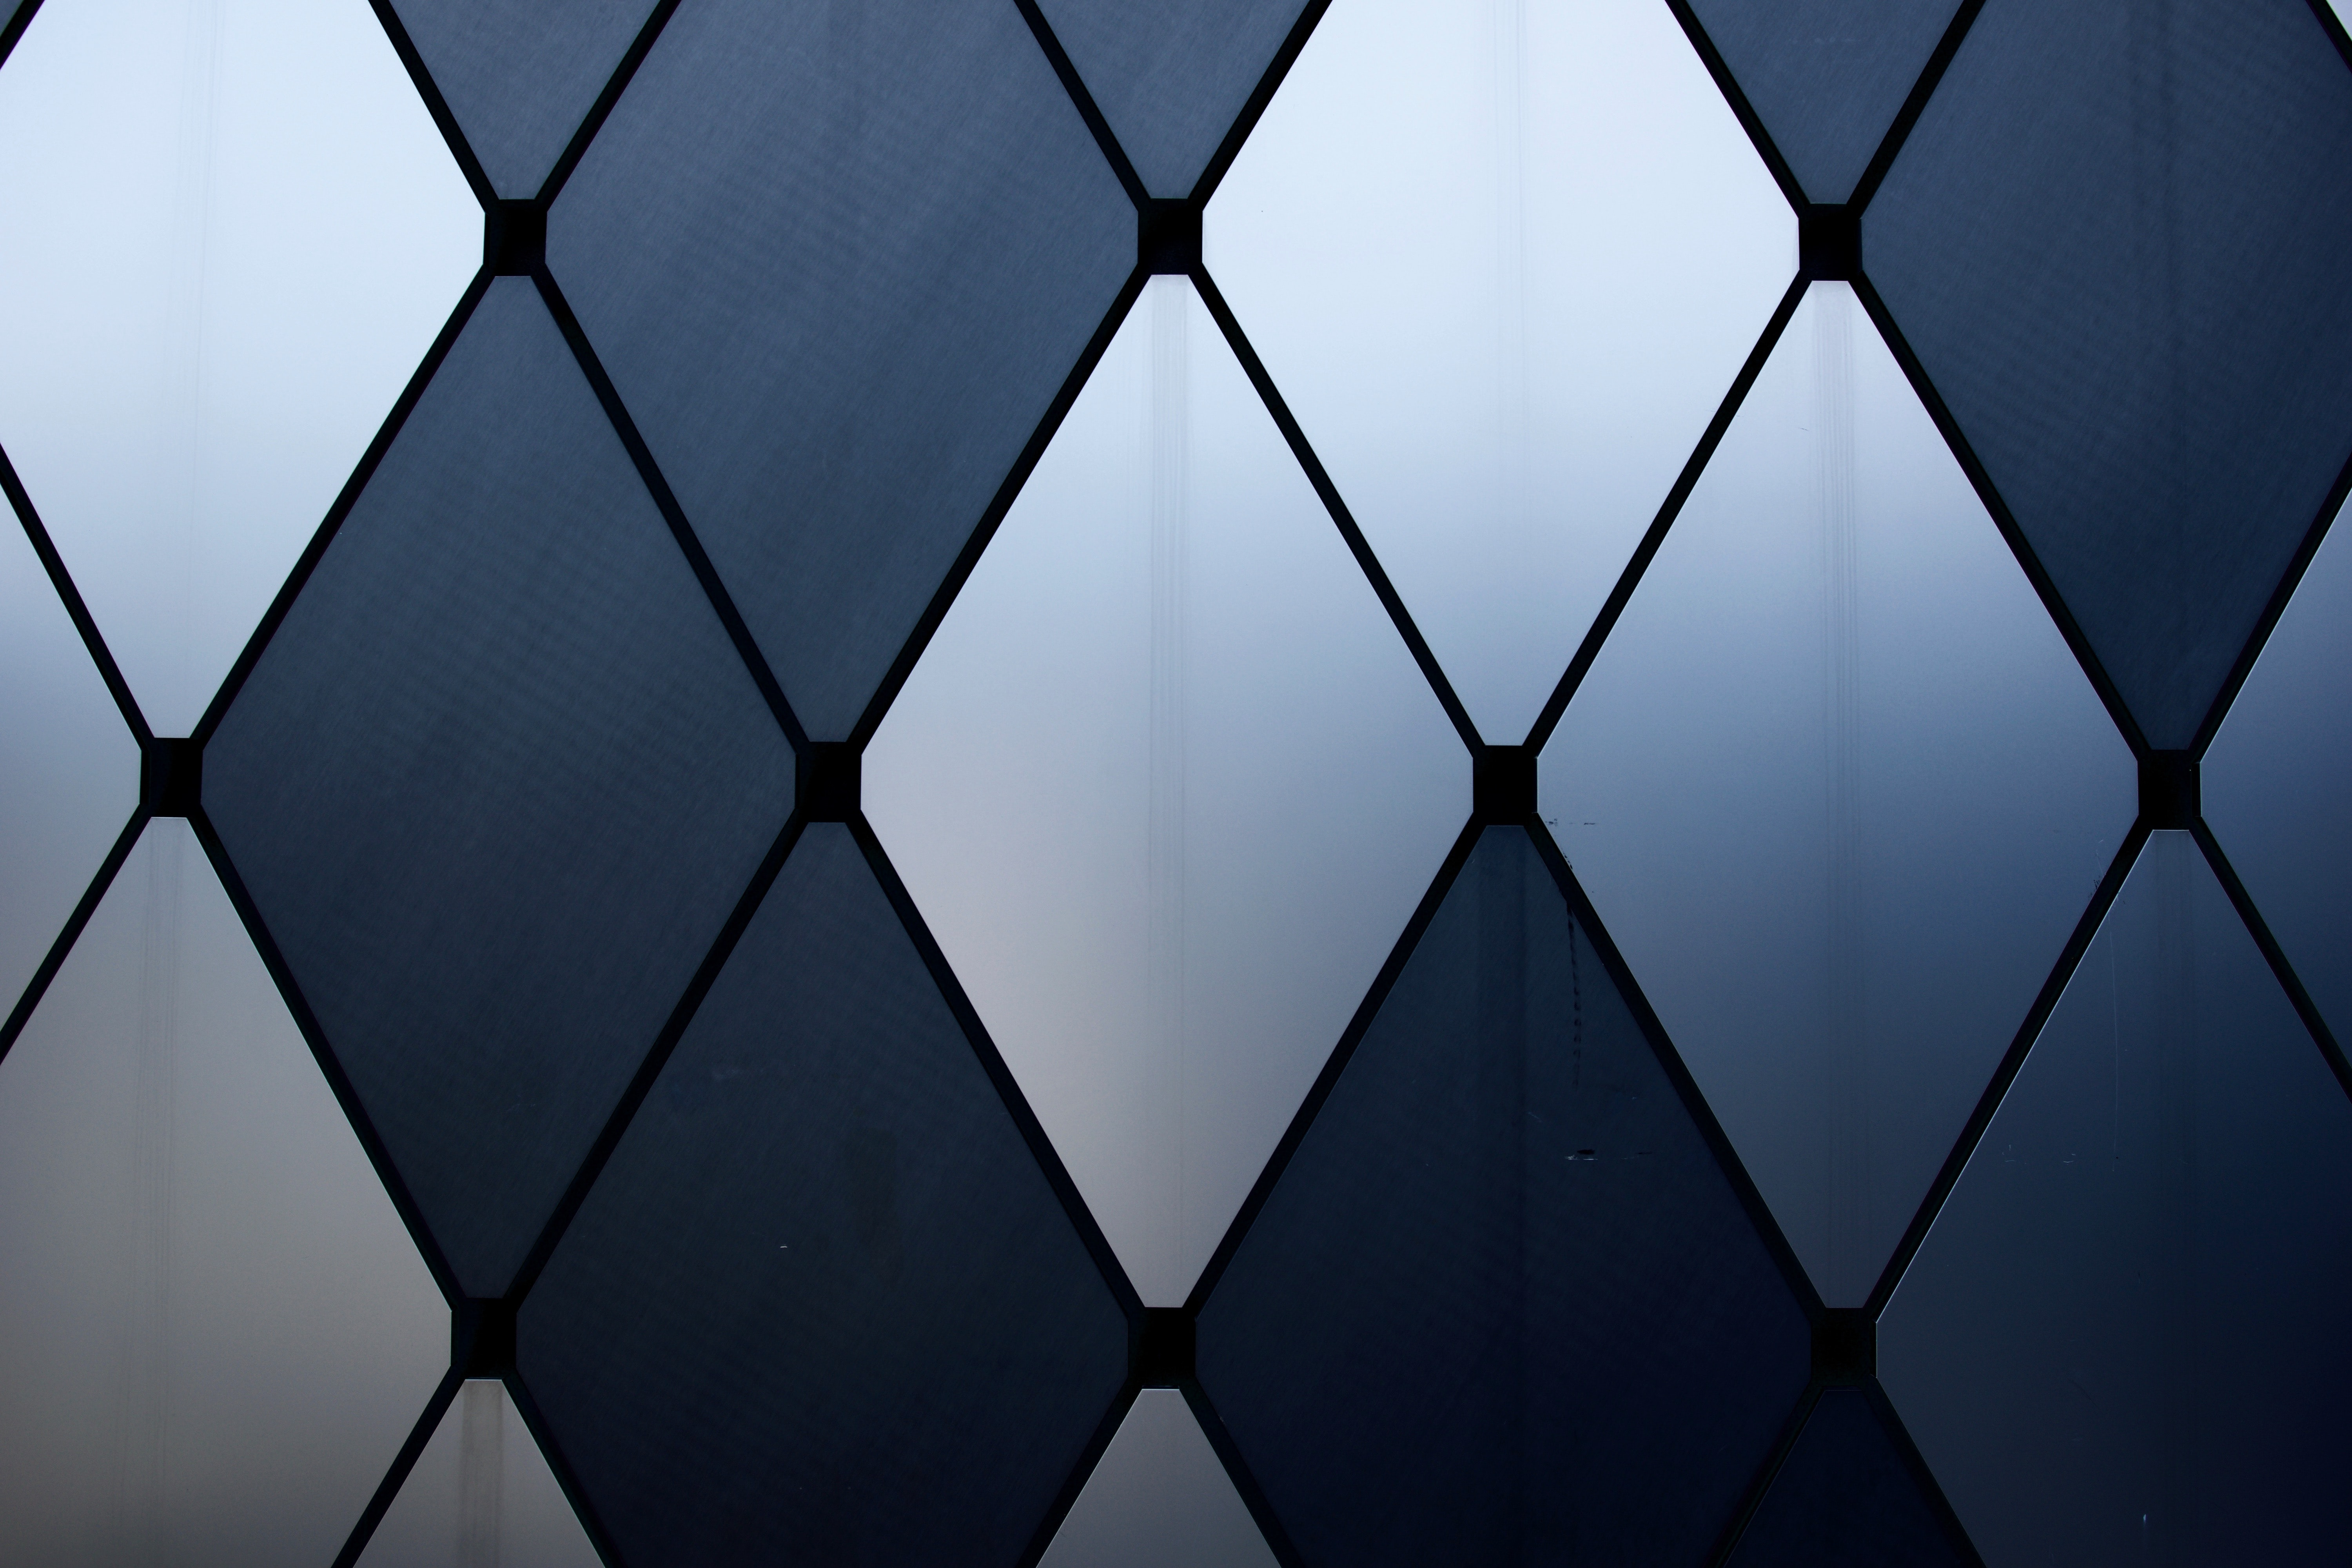 white and black diamond pattern wallpaper